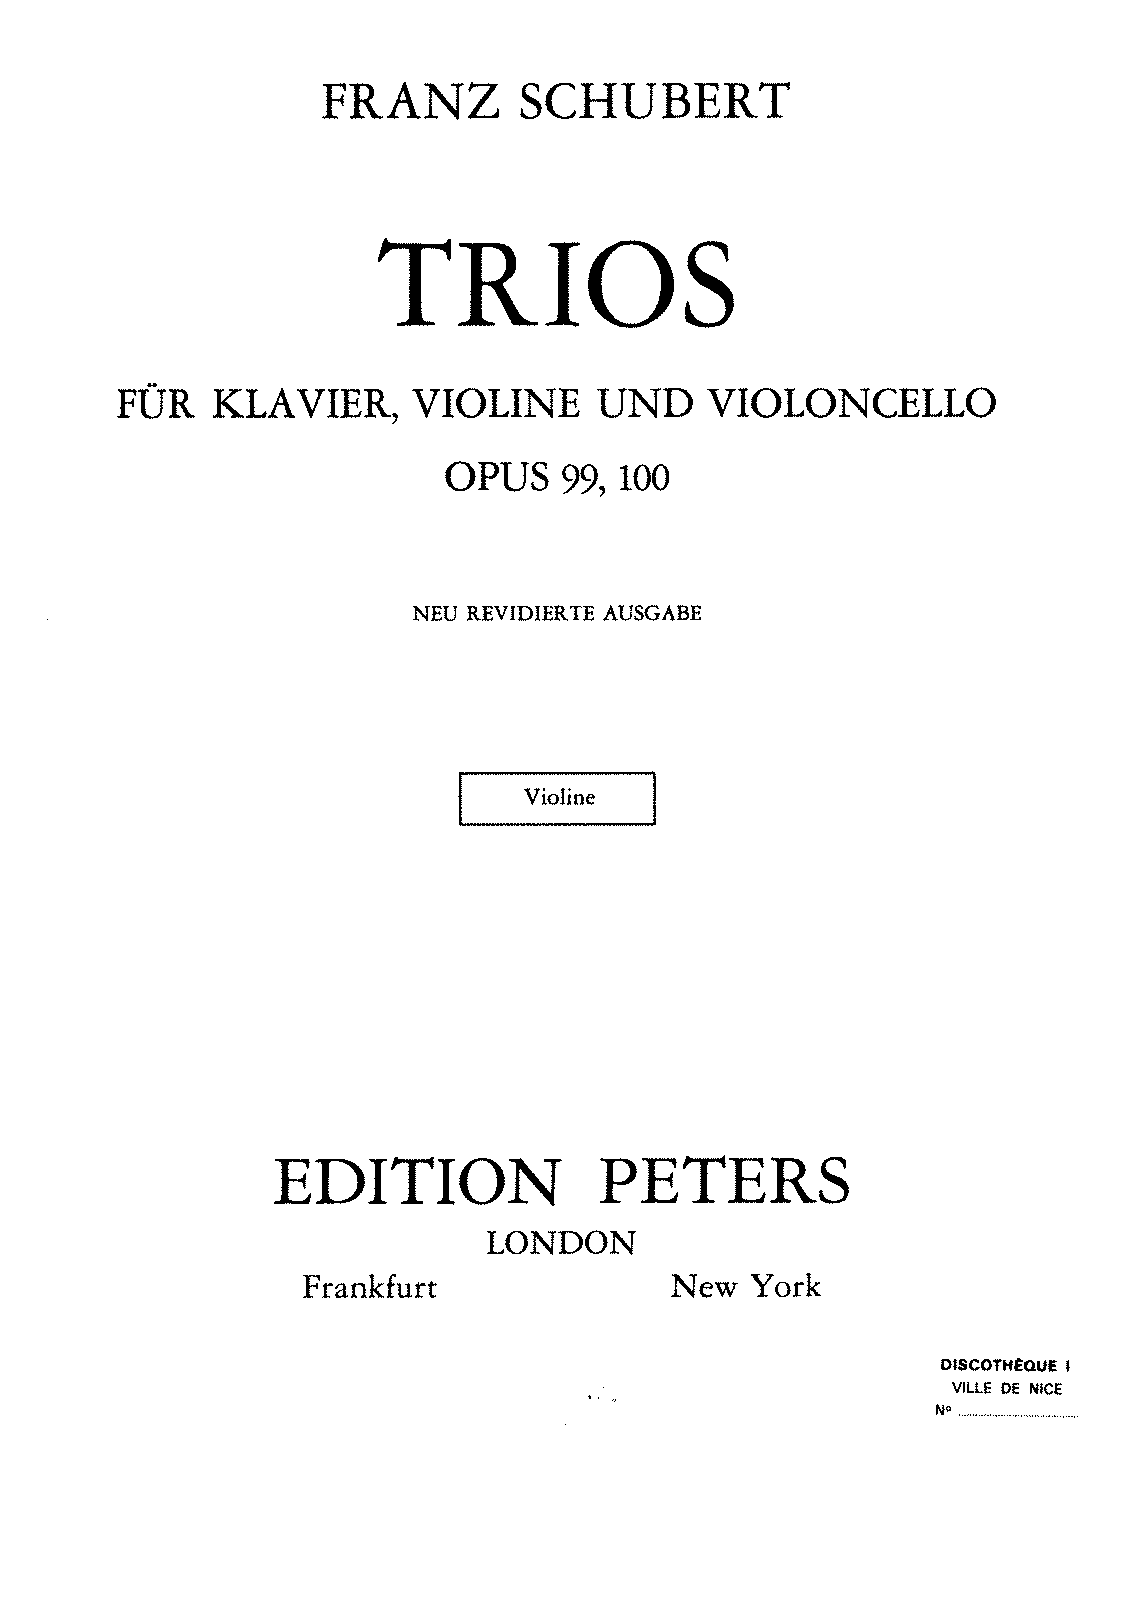 PMLP10136-schubert trio2 violin petersneu.pdf